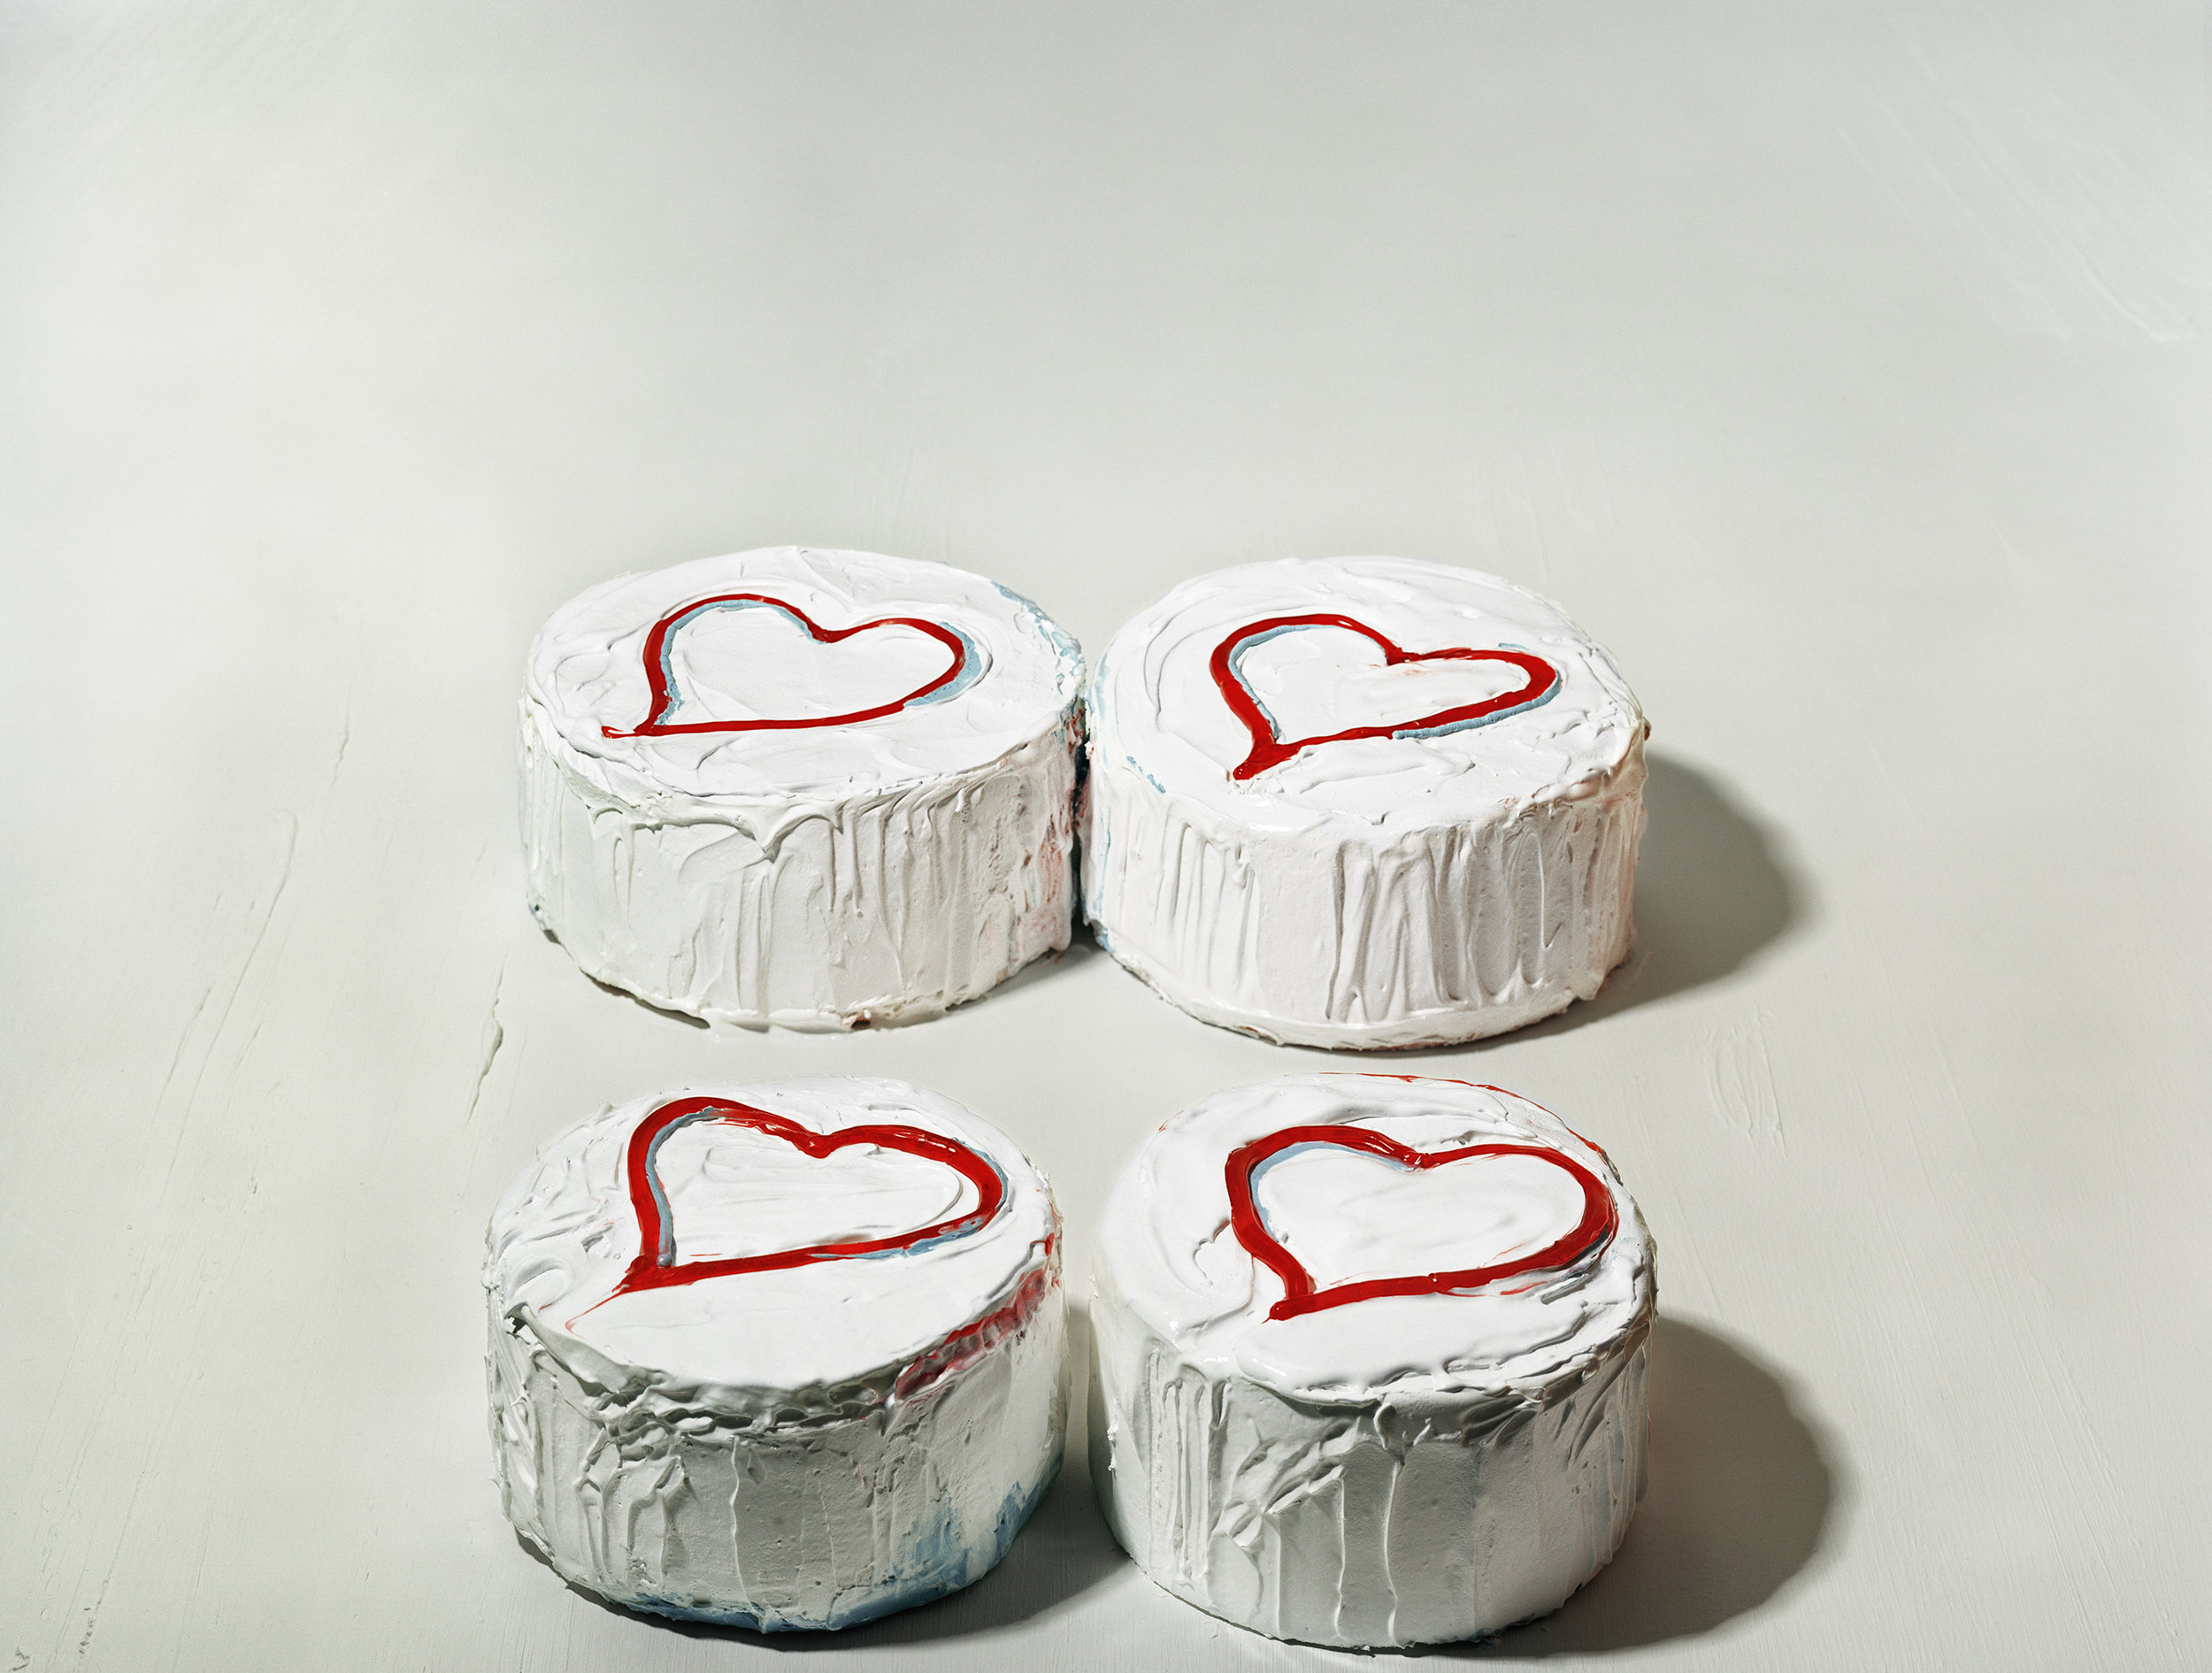 Four Heart Cakes, © Sharon Core, 2005